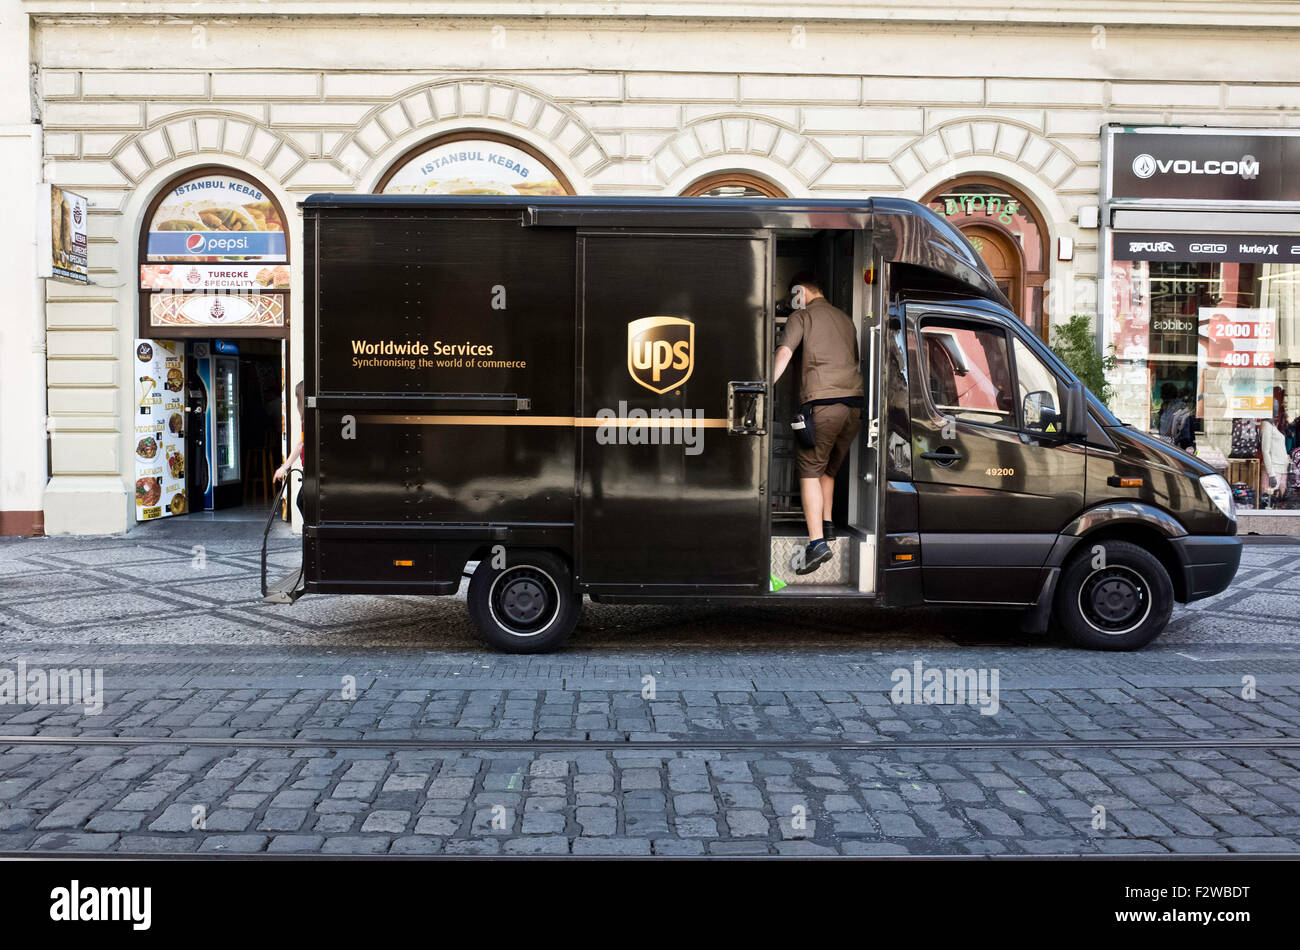 UPS mail delivery van Immagini Stock